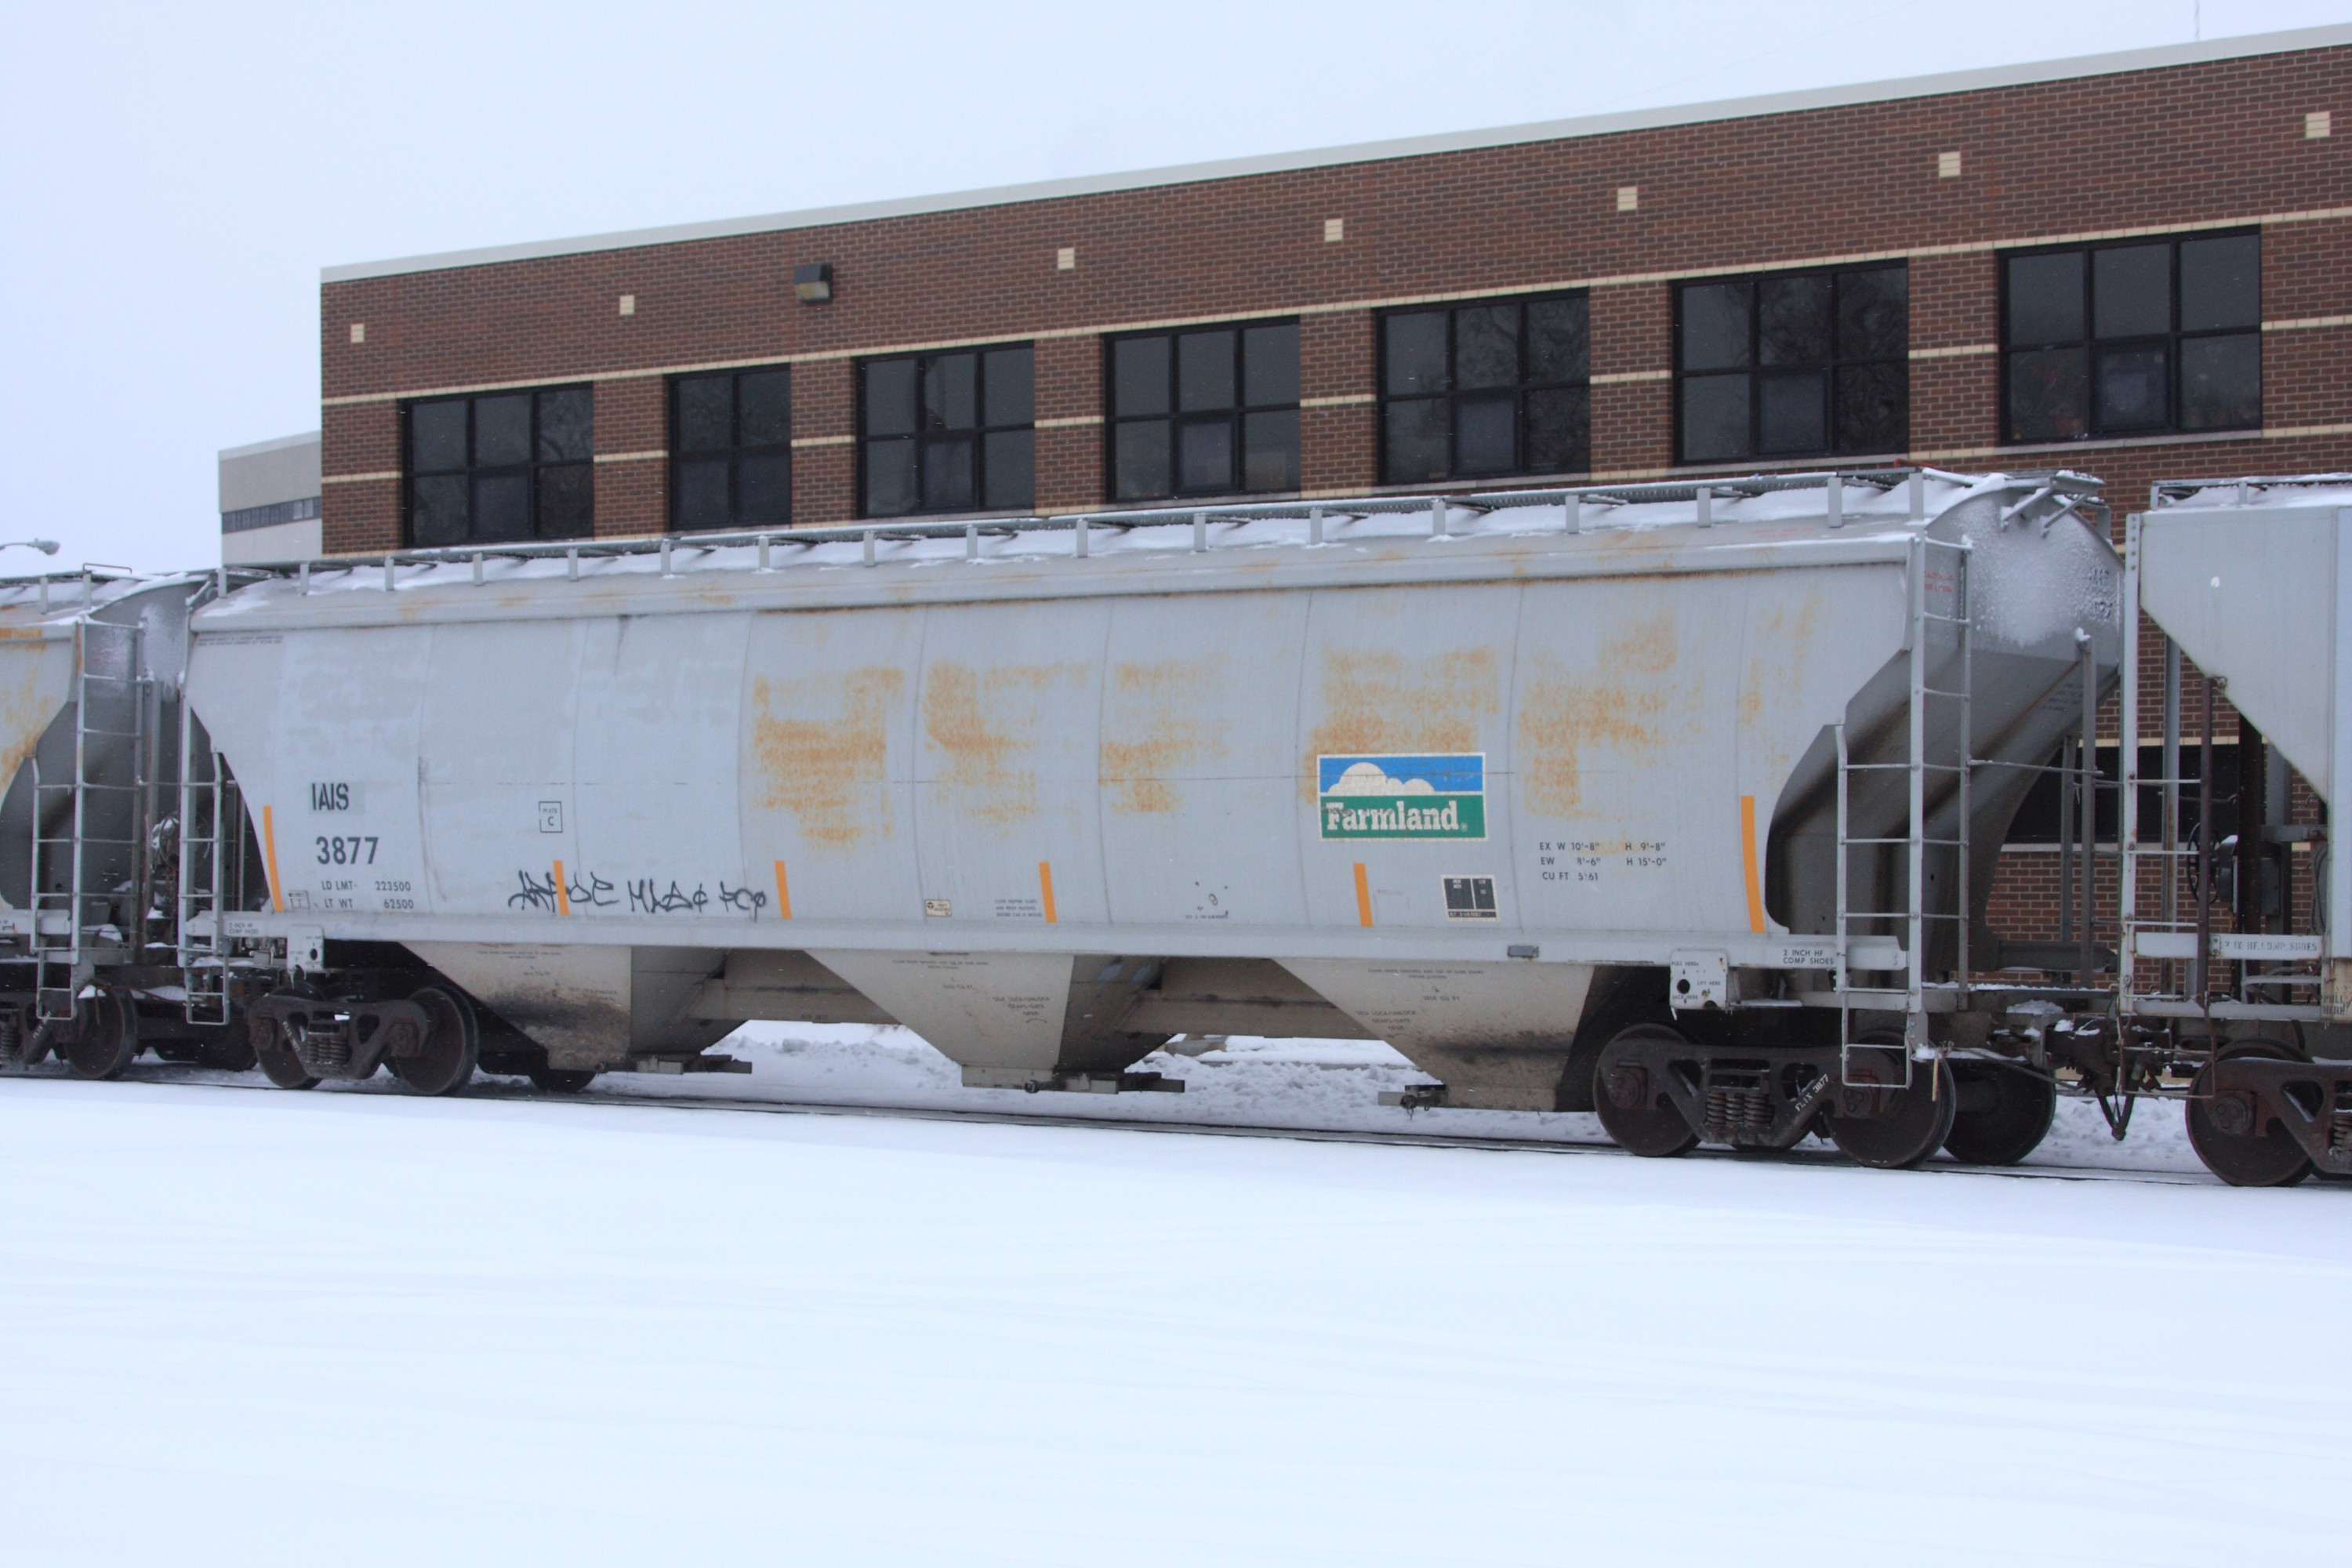 IAIS 3877 in Moline, IL, on 27 Dec 2010